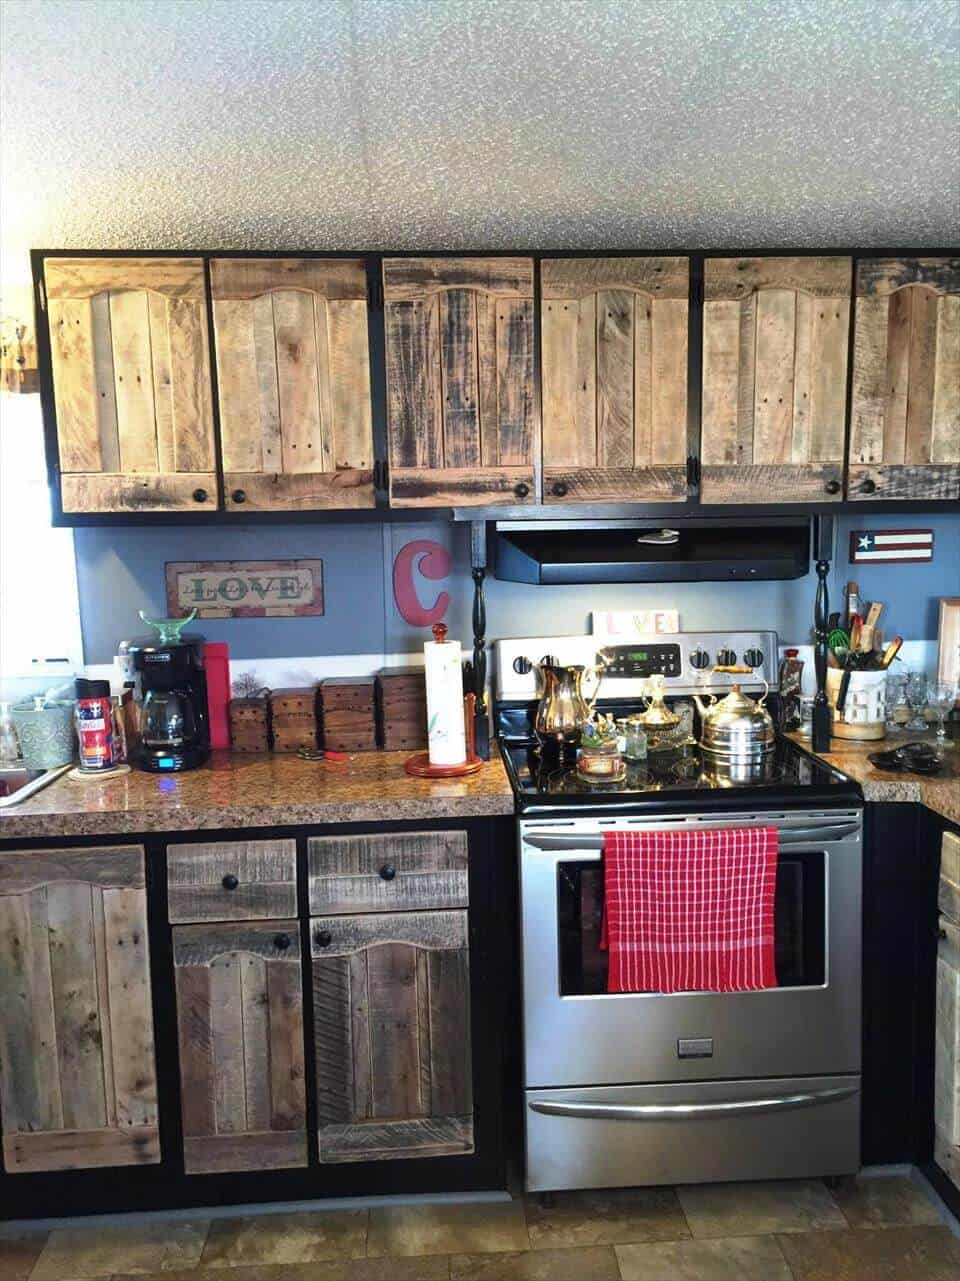 Upcycled pallet wood cupboard doors